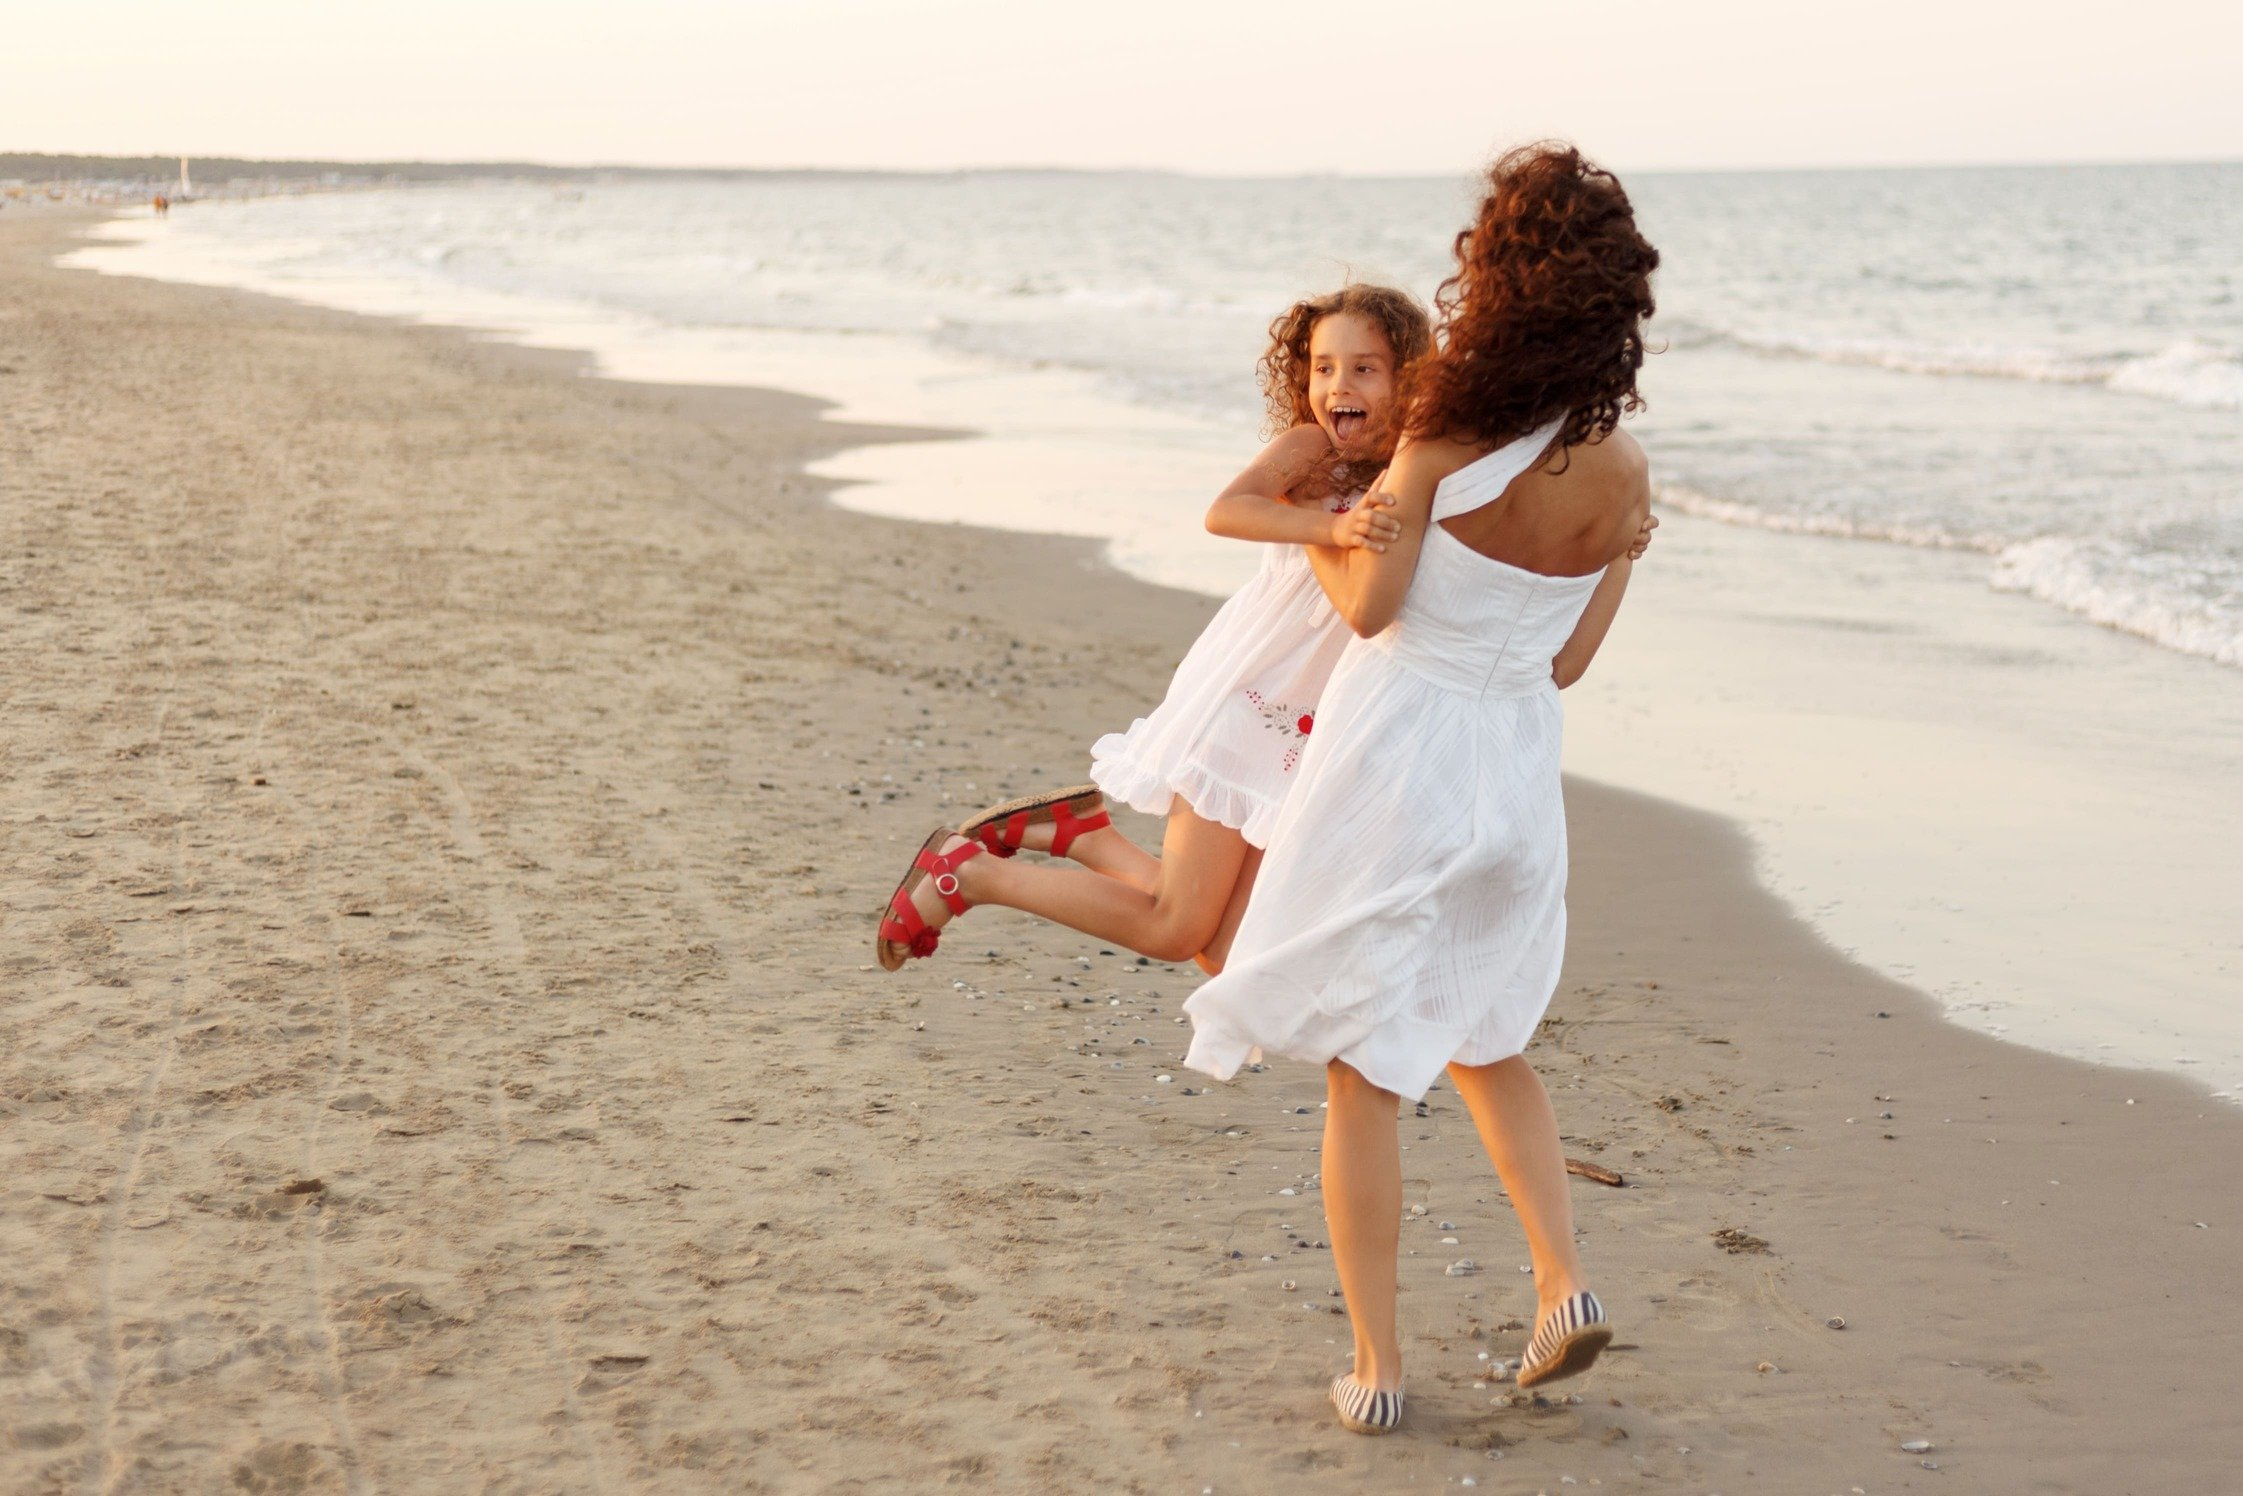 mother-daughter-beach-sunset-min.jpg